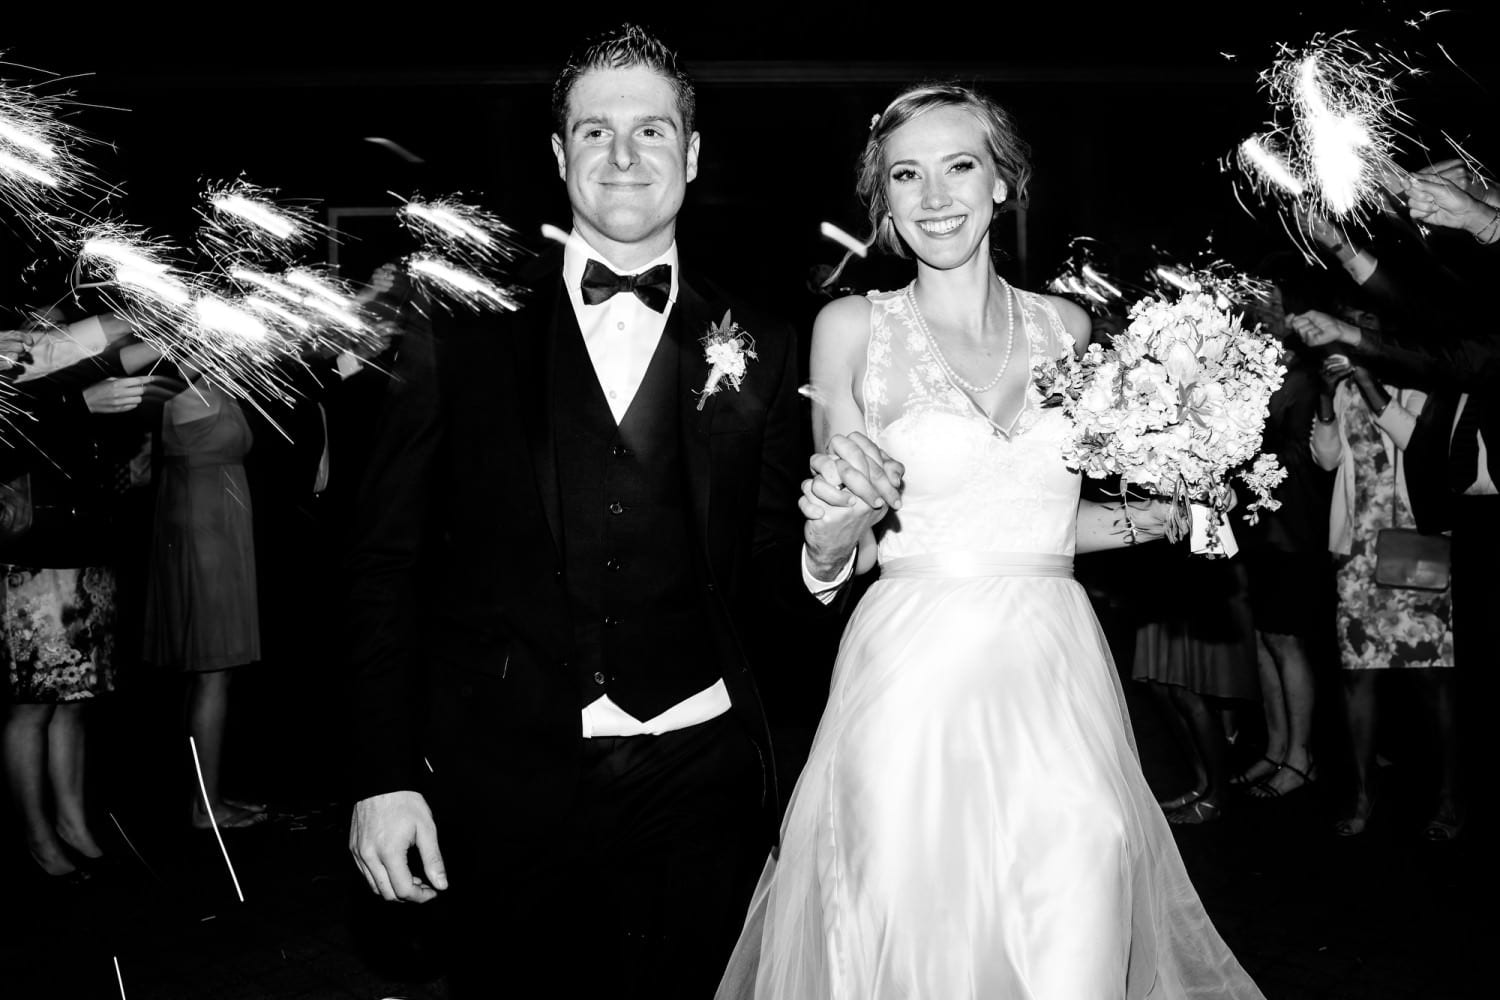 Storm Crest Cellars Wedding in South Beach Newport, Oregon by Stark Photography (4)